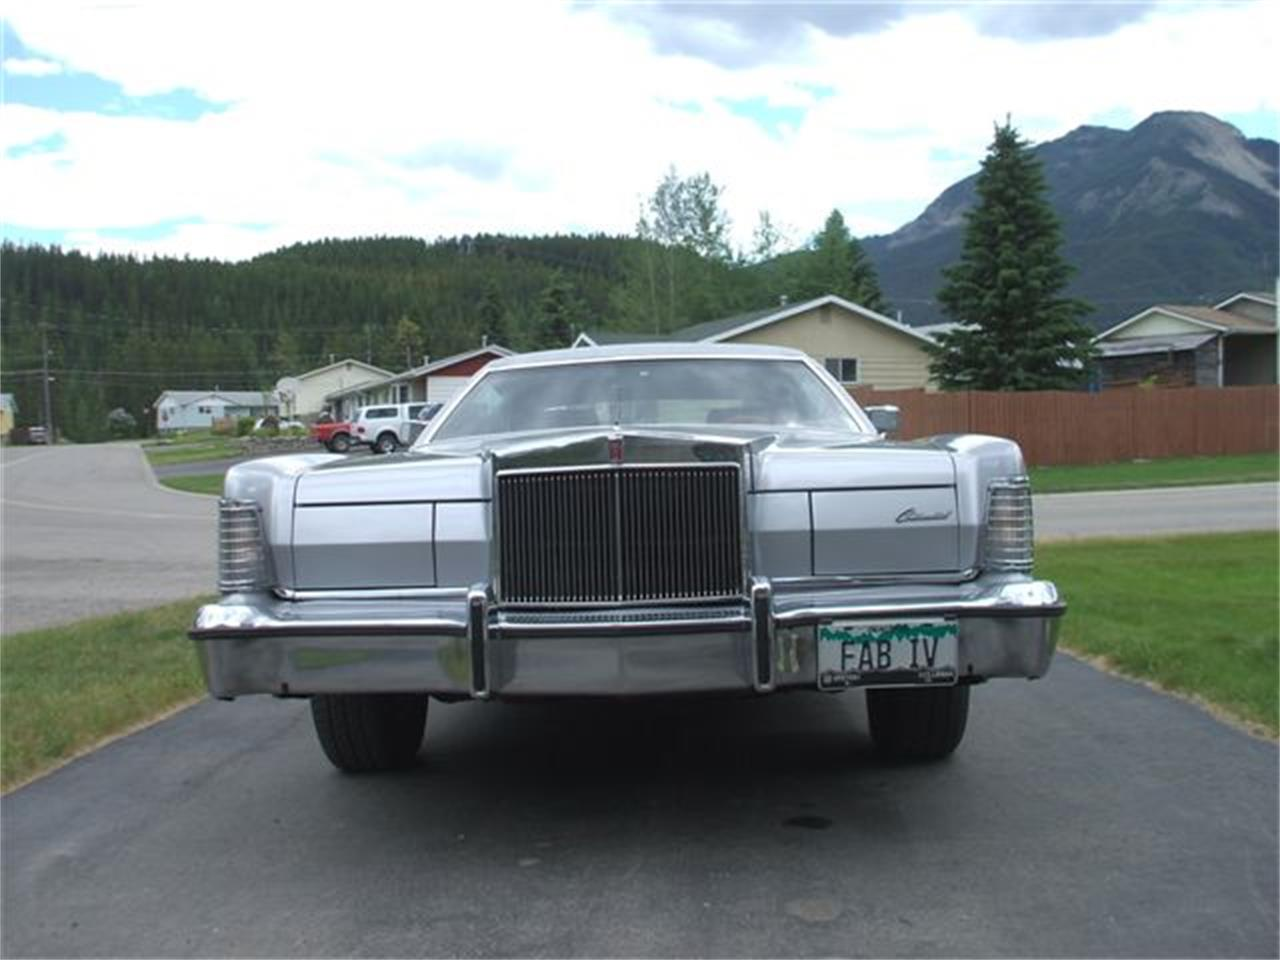 Large Picture of '74 Lincoln Continental Mark IV located in British Columbia - $7,600.00 Offered by a Private Seller - E23Q